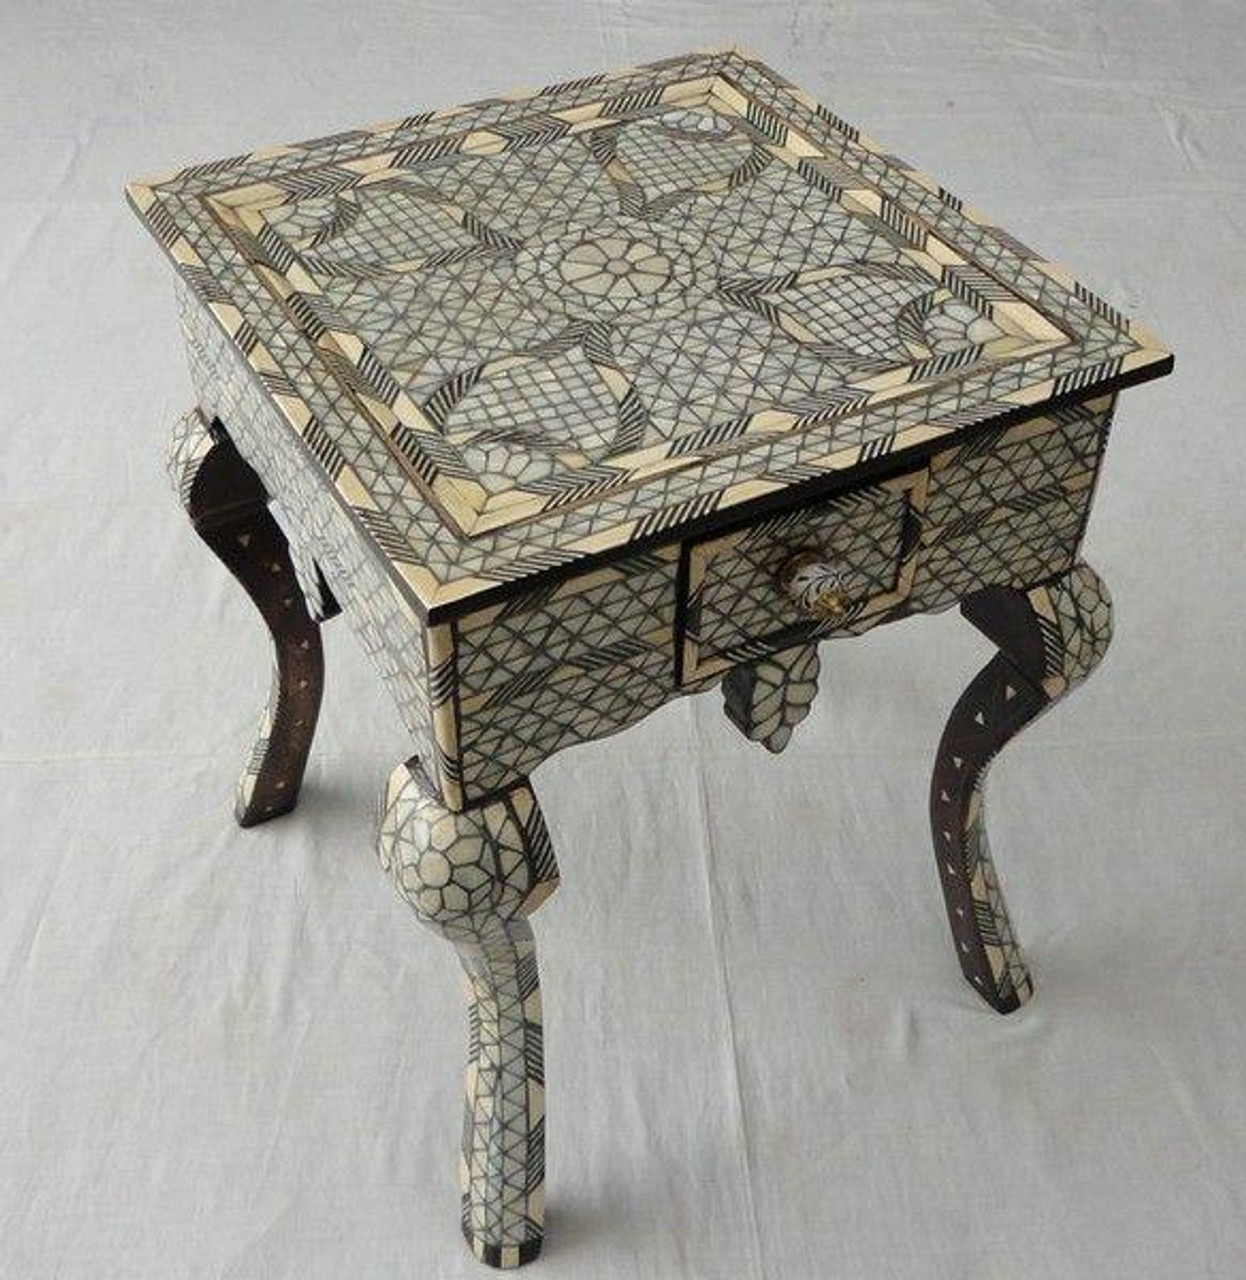 Enjoyable Syrian Mother Of Pearl Wood Coffee Tea Table With A Drawer Lamtechconsult Wood Chair Design Ideas Lamtechconsultcom